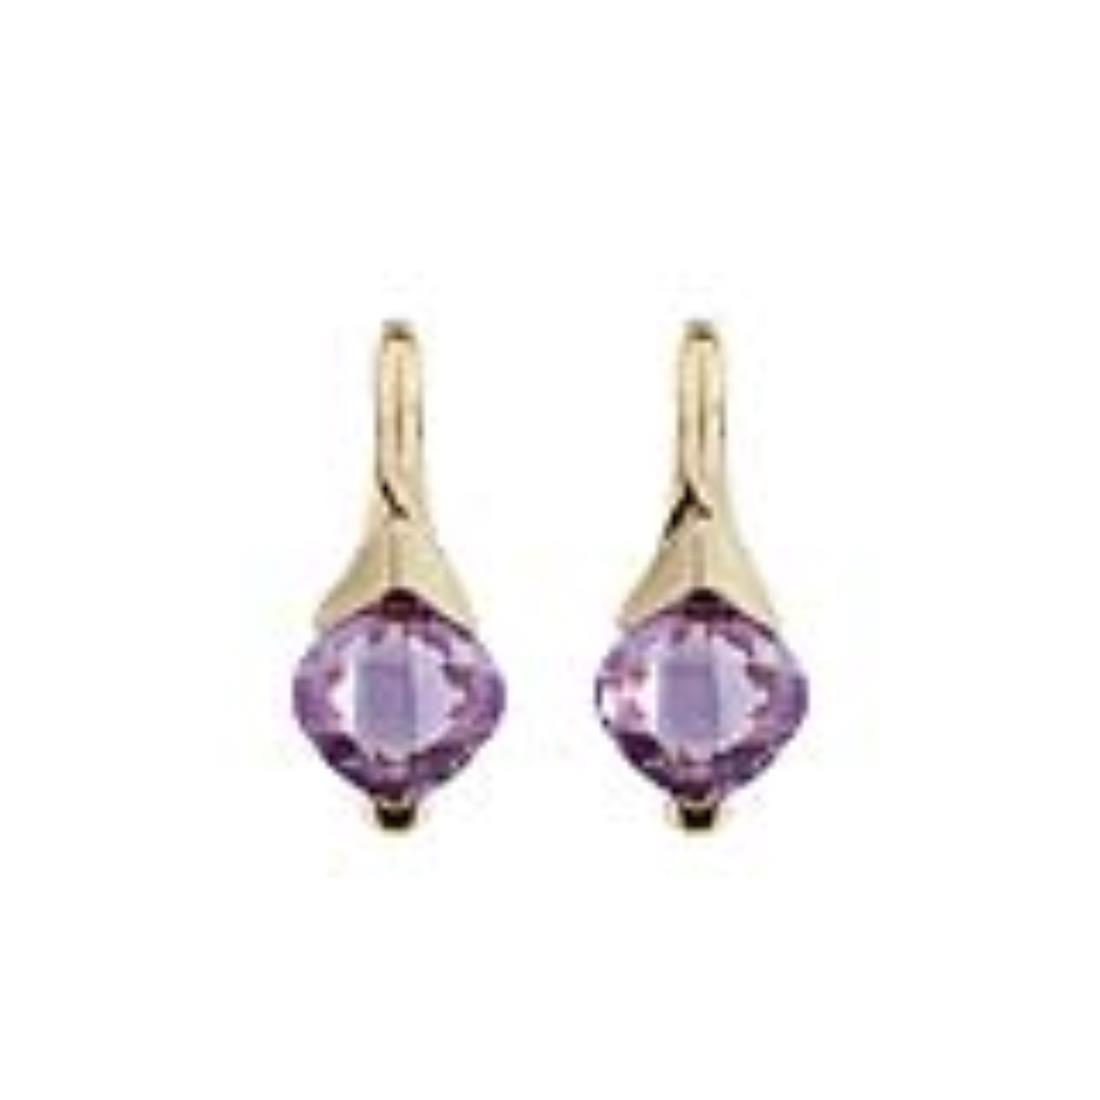 Yellow gold earrings with 4.50 ct square briolette cut amethyst. 